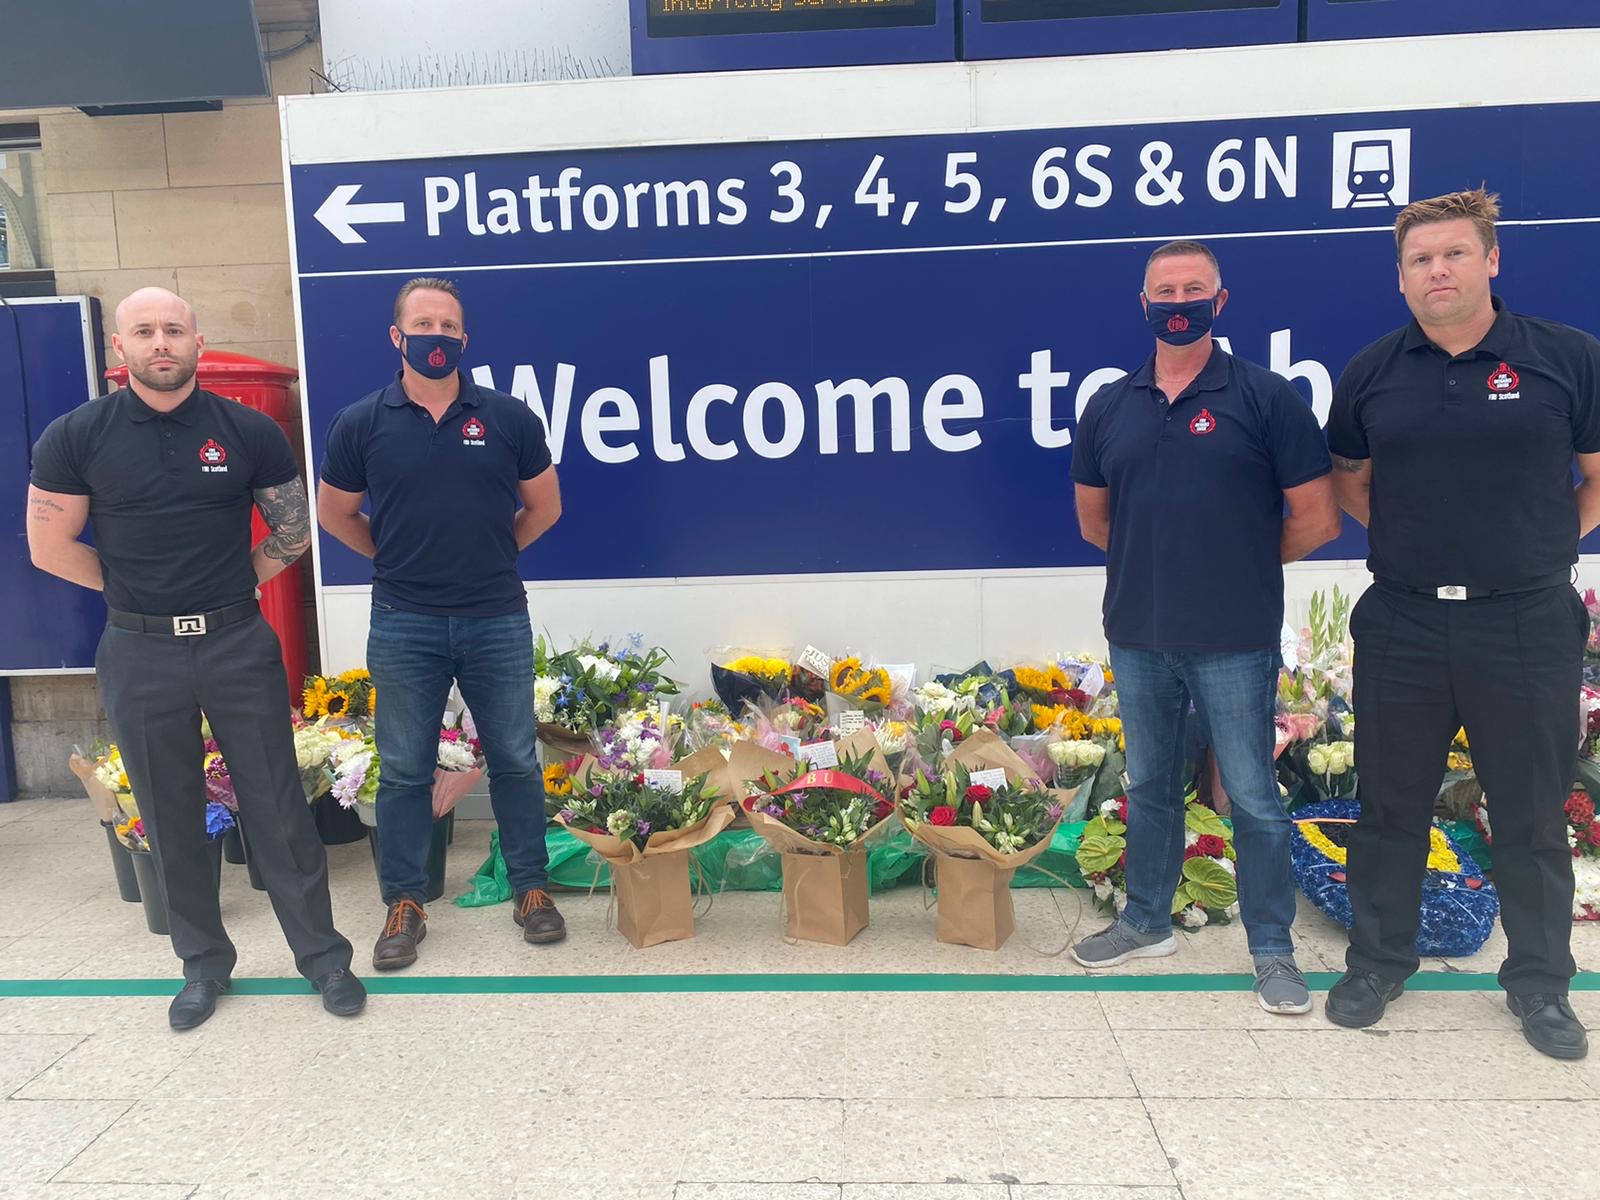 The firefighters laying flowers at Aberdeen train station